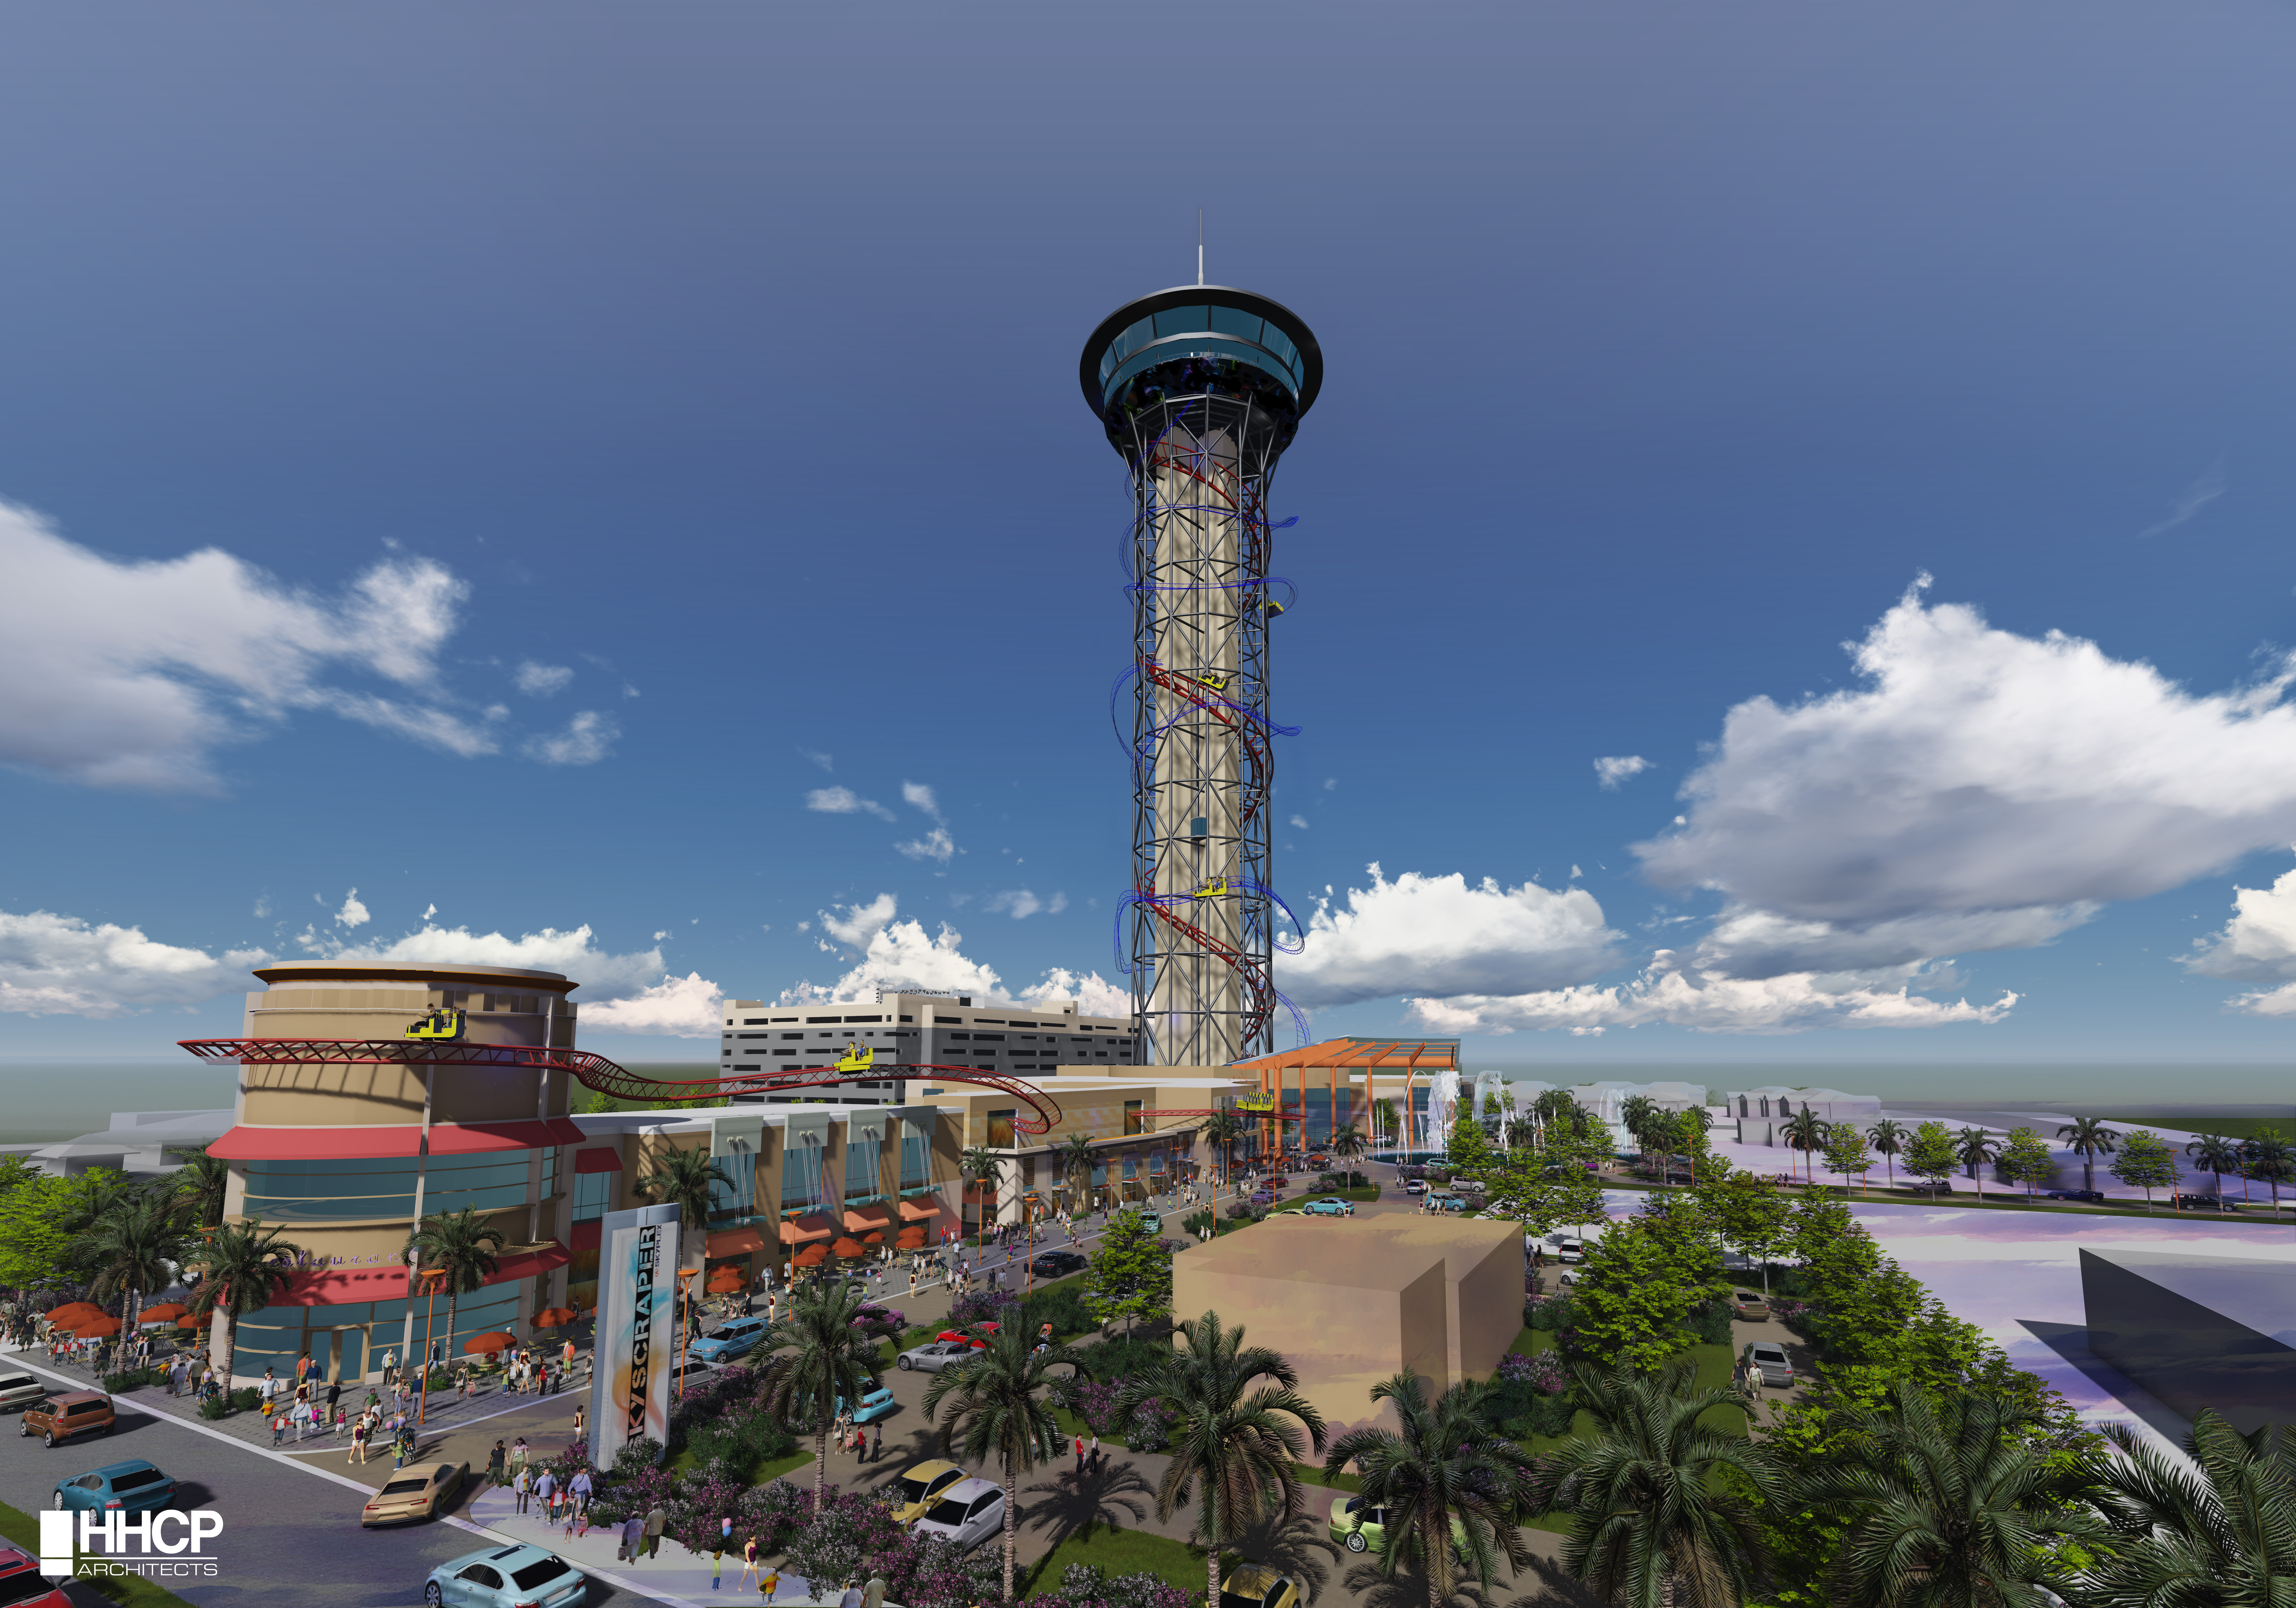 """Rendering of World's Tallest Rollercoaster and Entertainment Complex """"The Skyscraper™ at SKYPLEX™"""" Coming to the Orlando Skyline in 2016. (Photo: Business Wire)"""